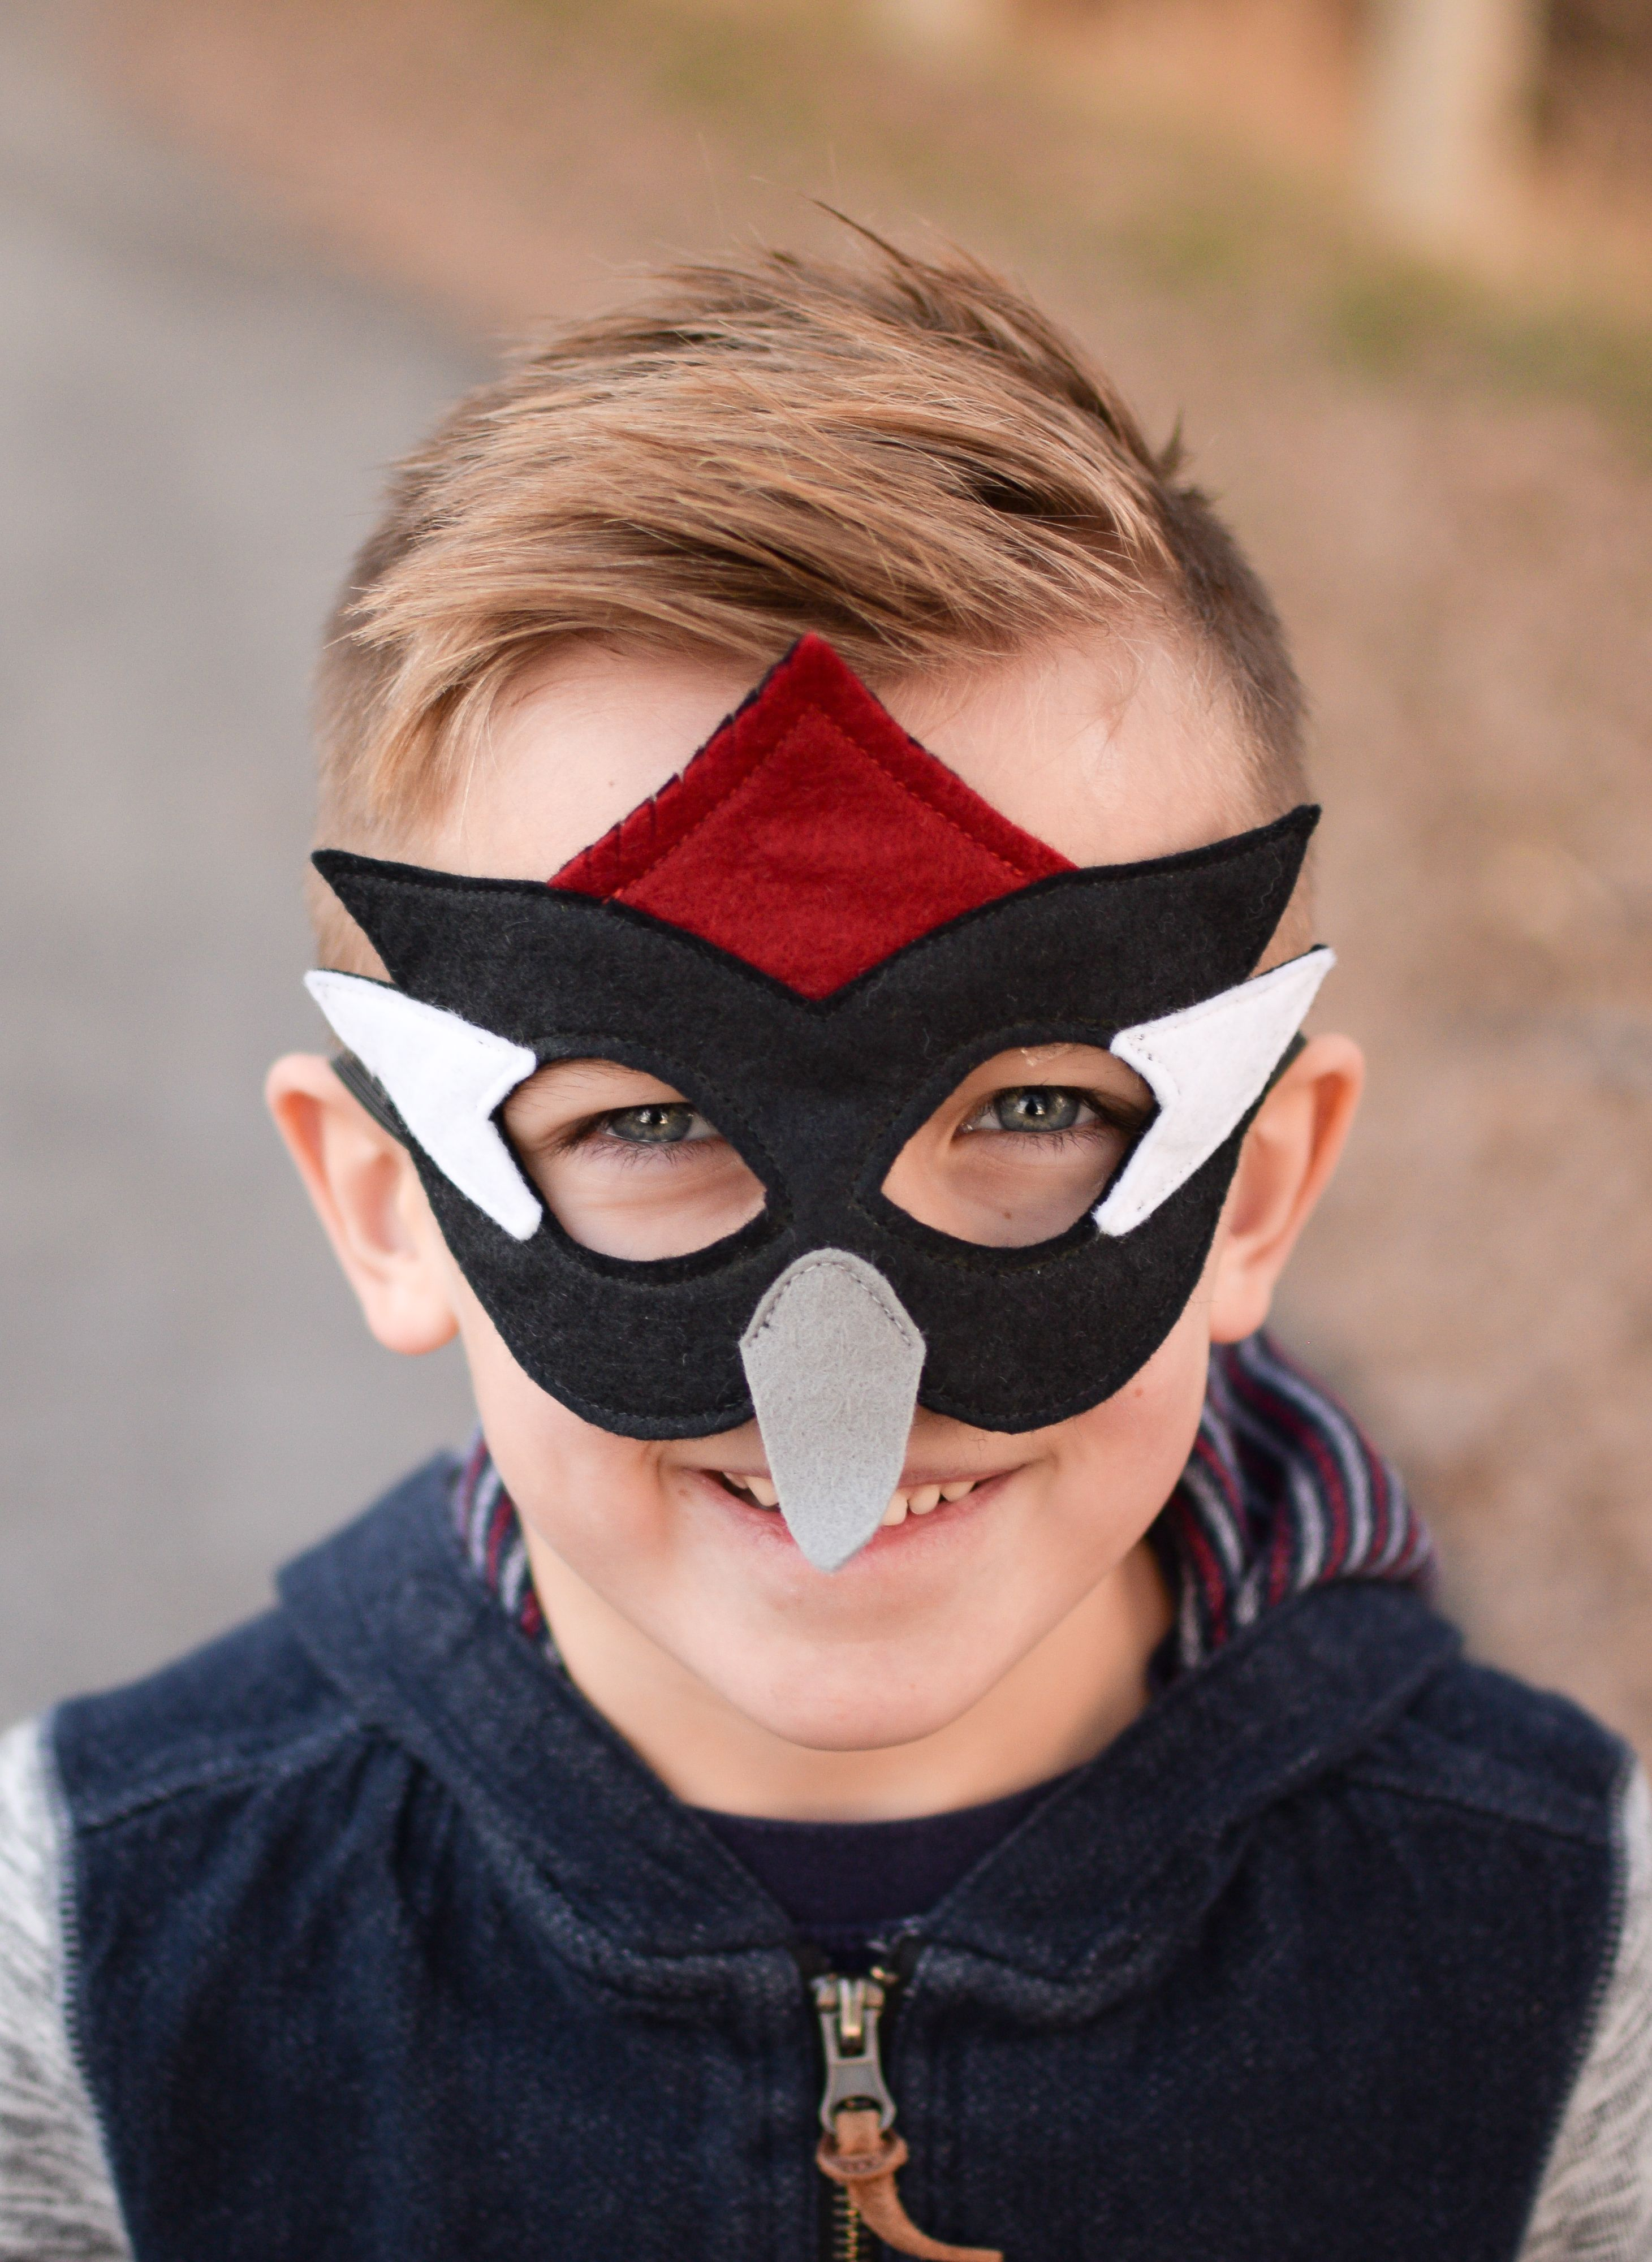 Woodpecker Mask | Bird costume, Woodpeckers and Costume accessories